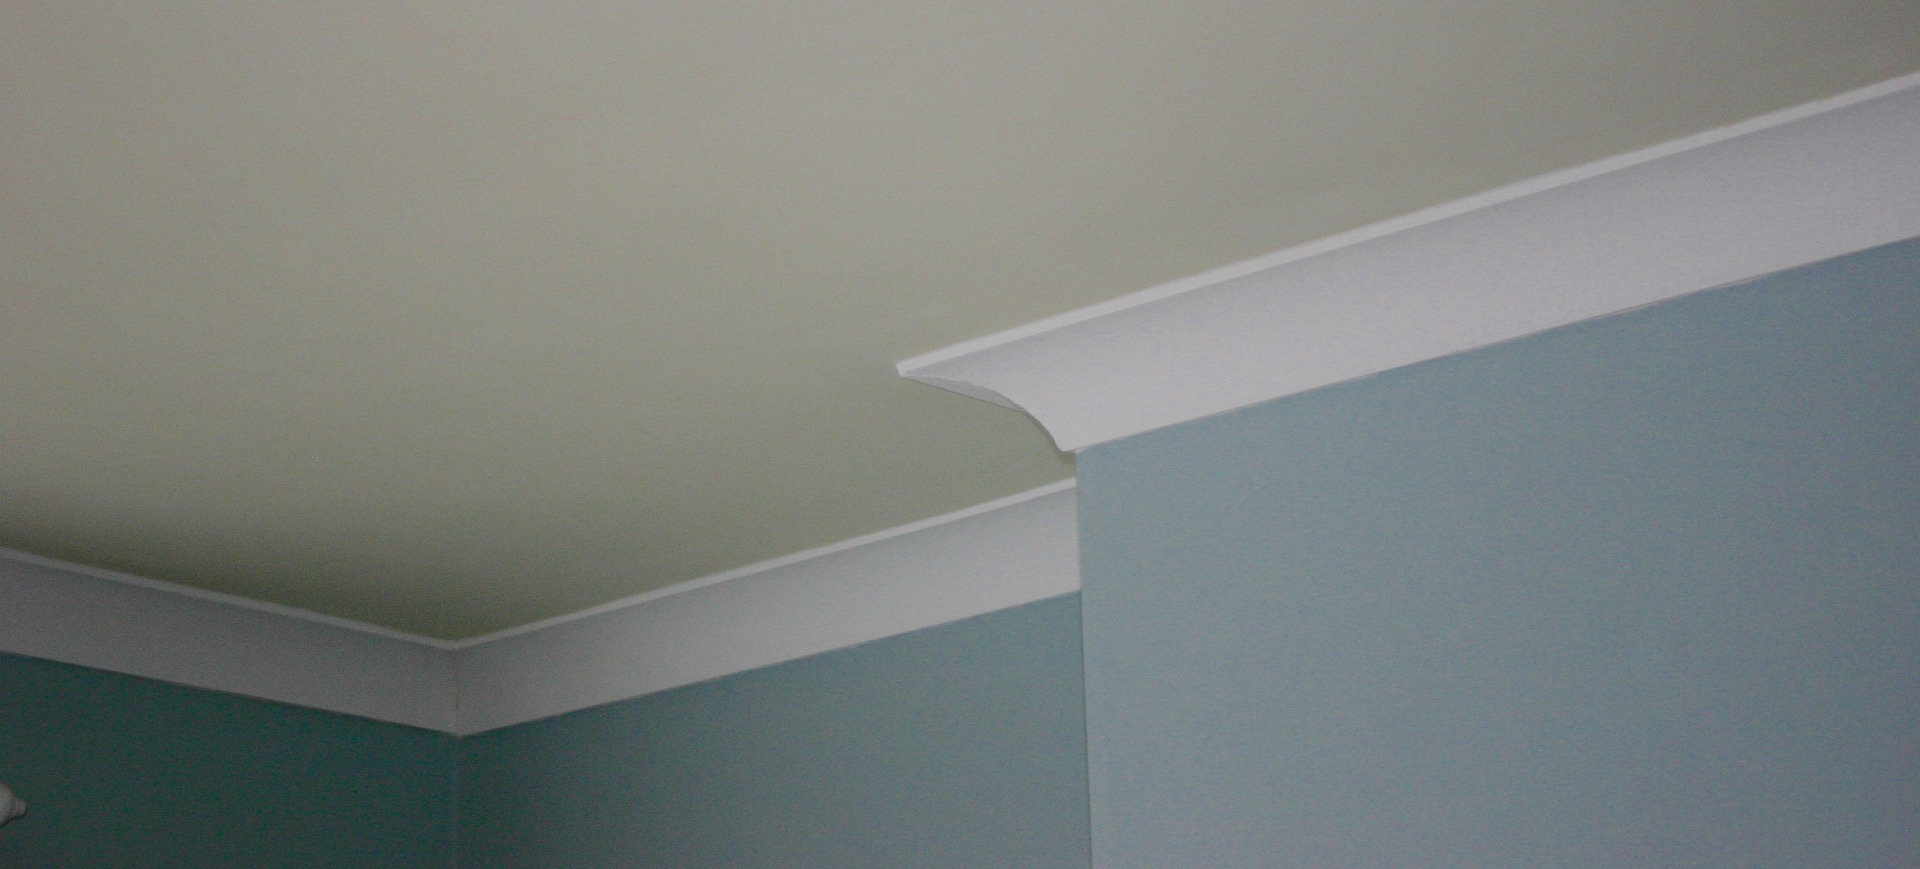 What Paint For Ceilings White